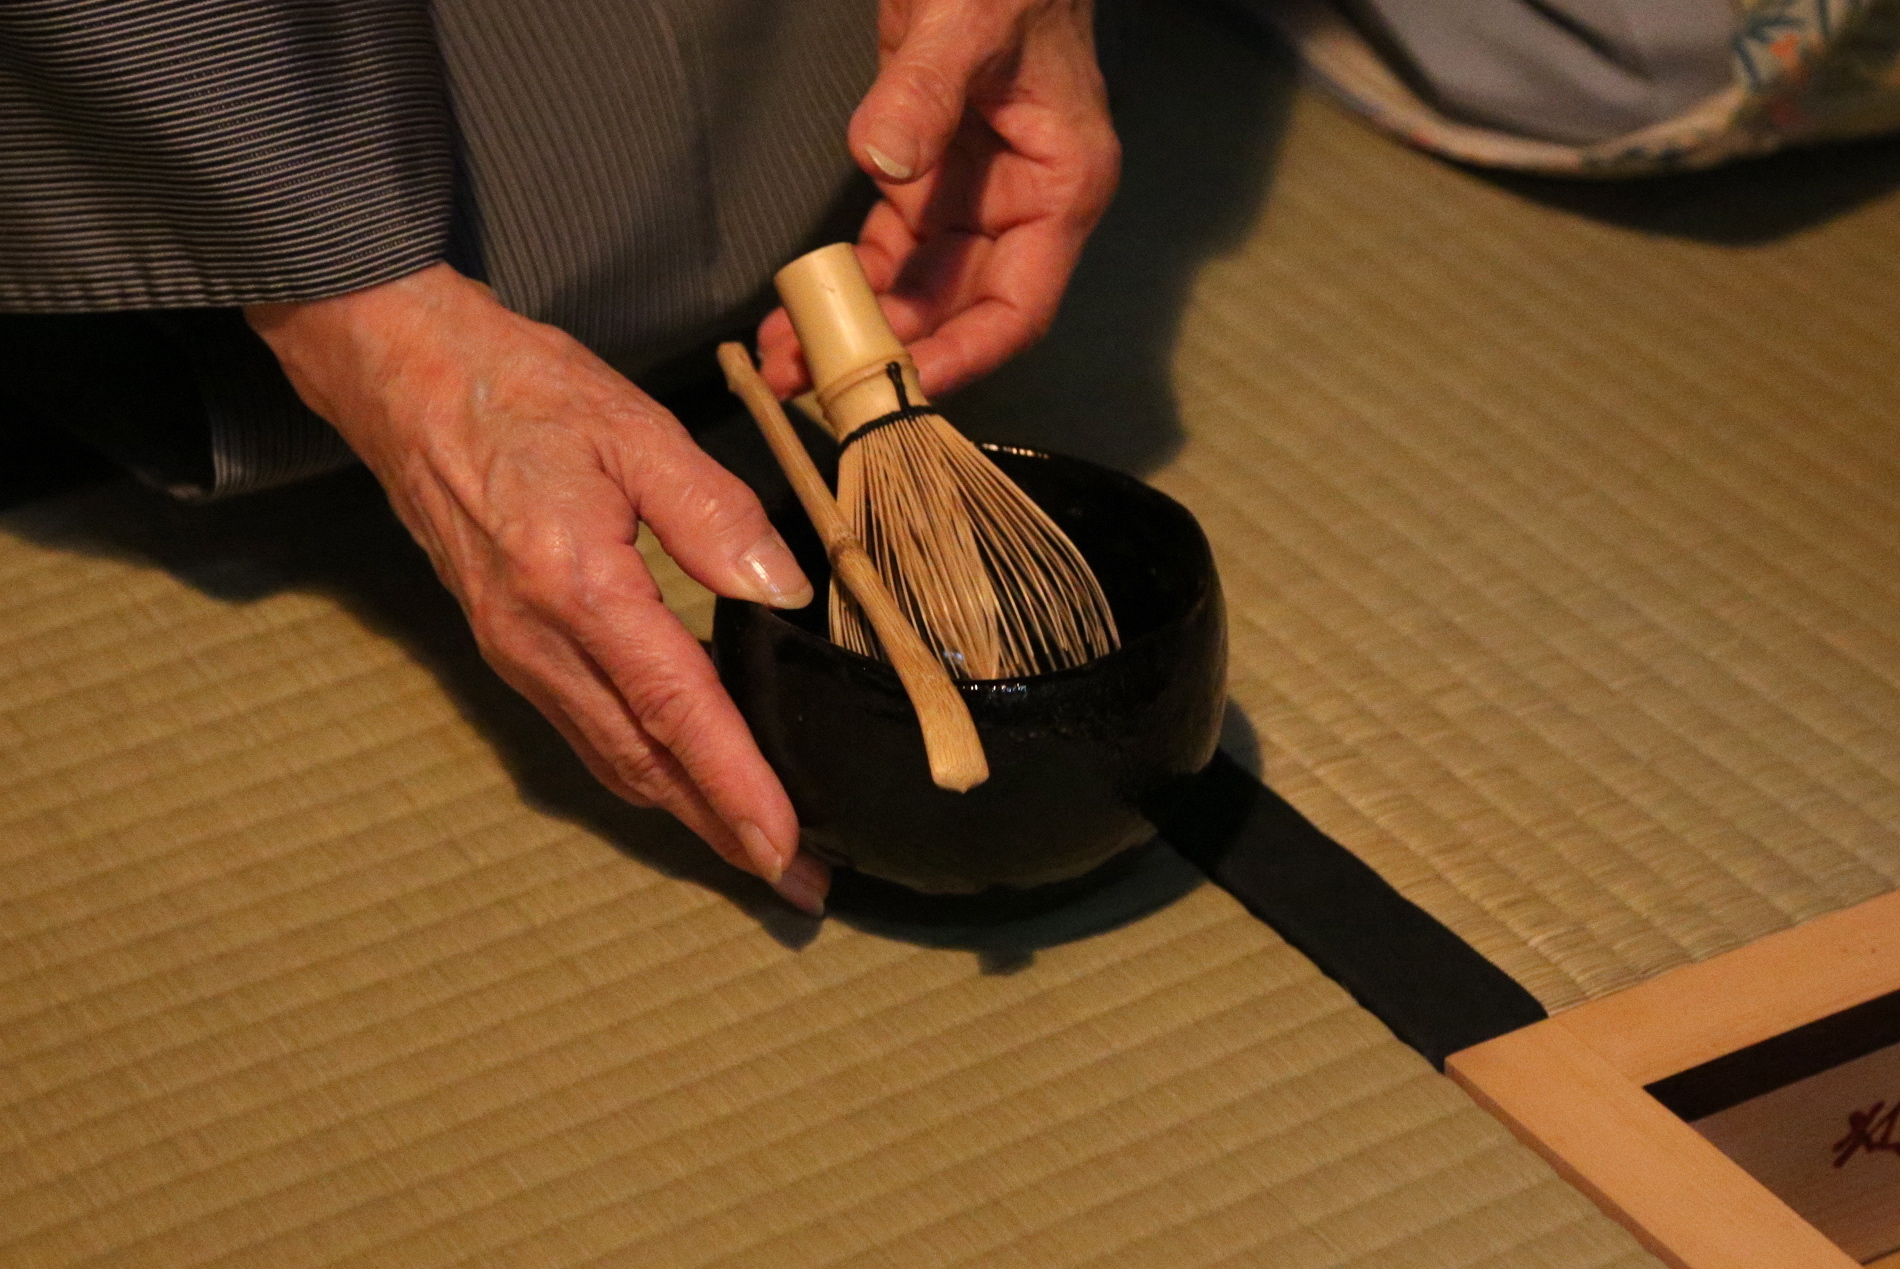 Matcha being prepared in a tea ceremony. © TOKI